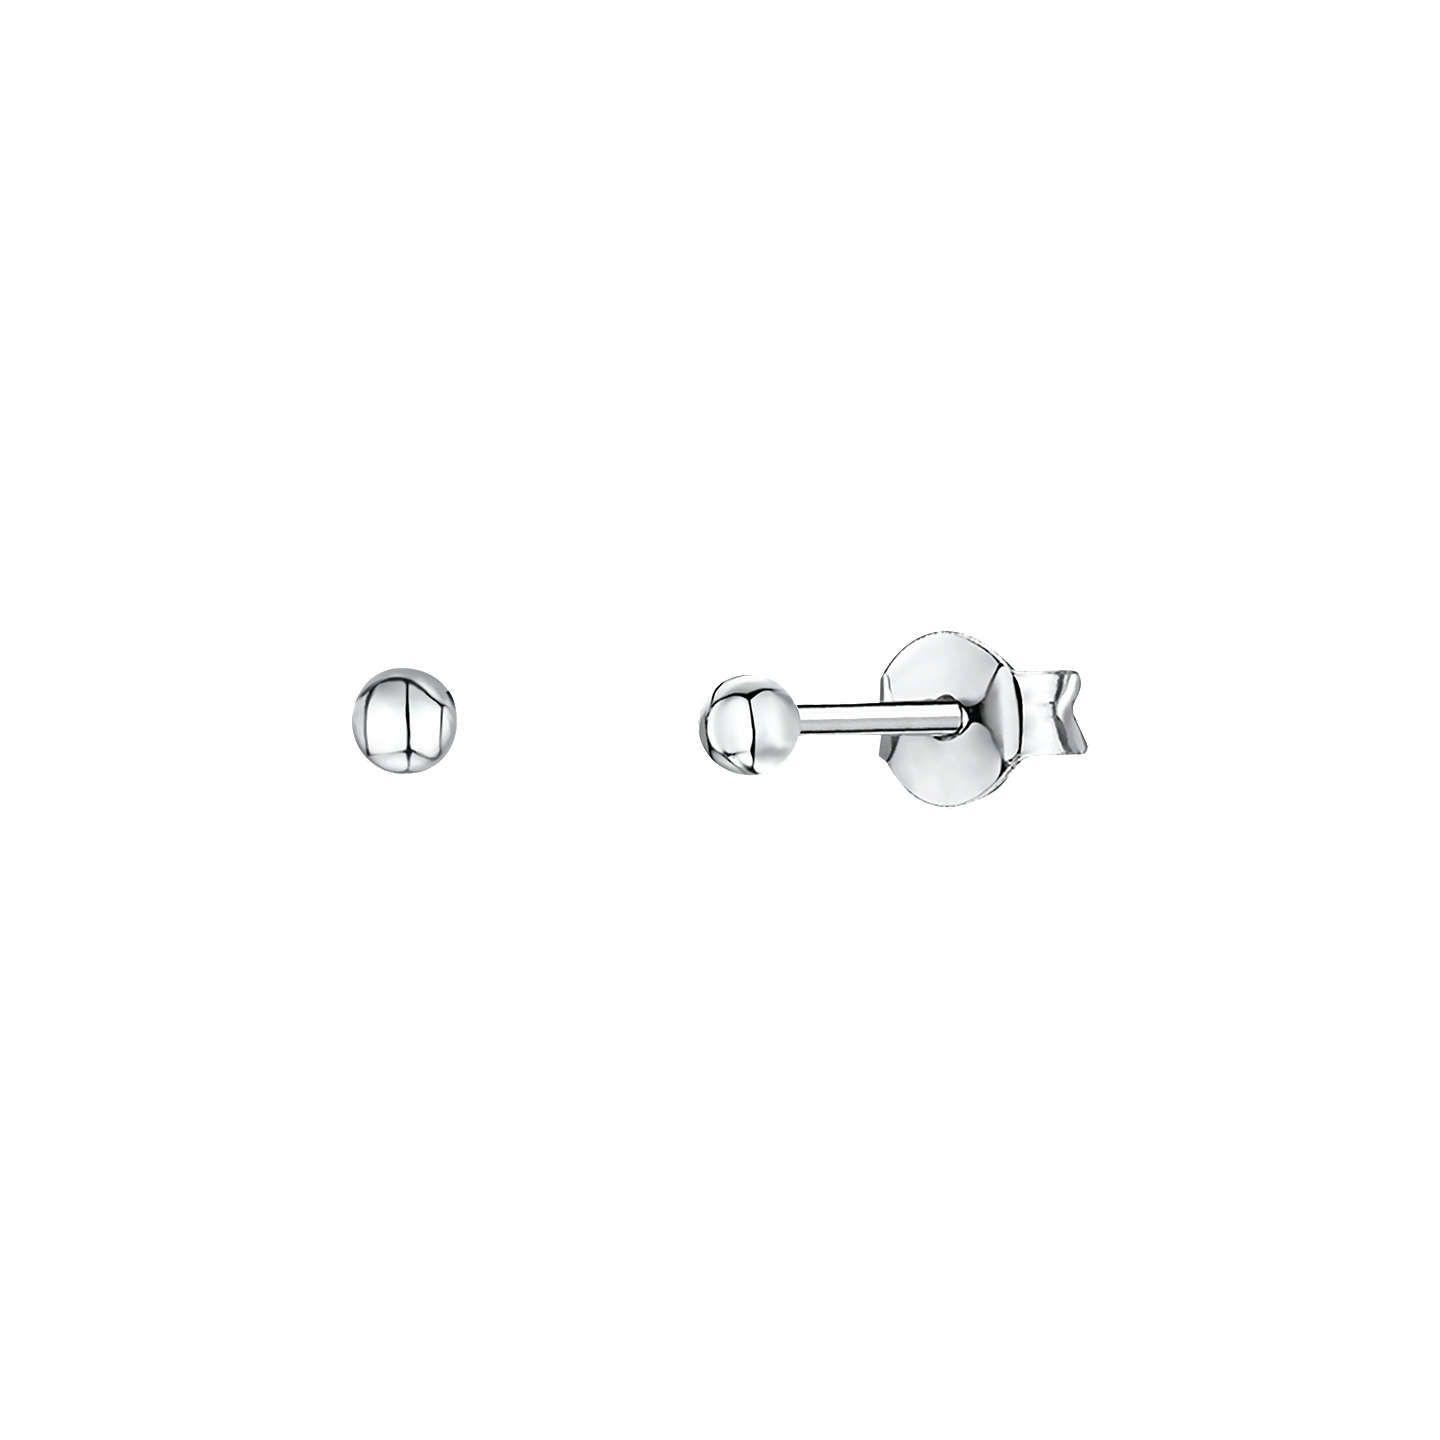 JOOLS by Jenny Brown ® Sterling Silver Earrings - Silver Ball Stud Earrings- Ji09ywdf4